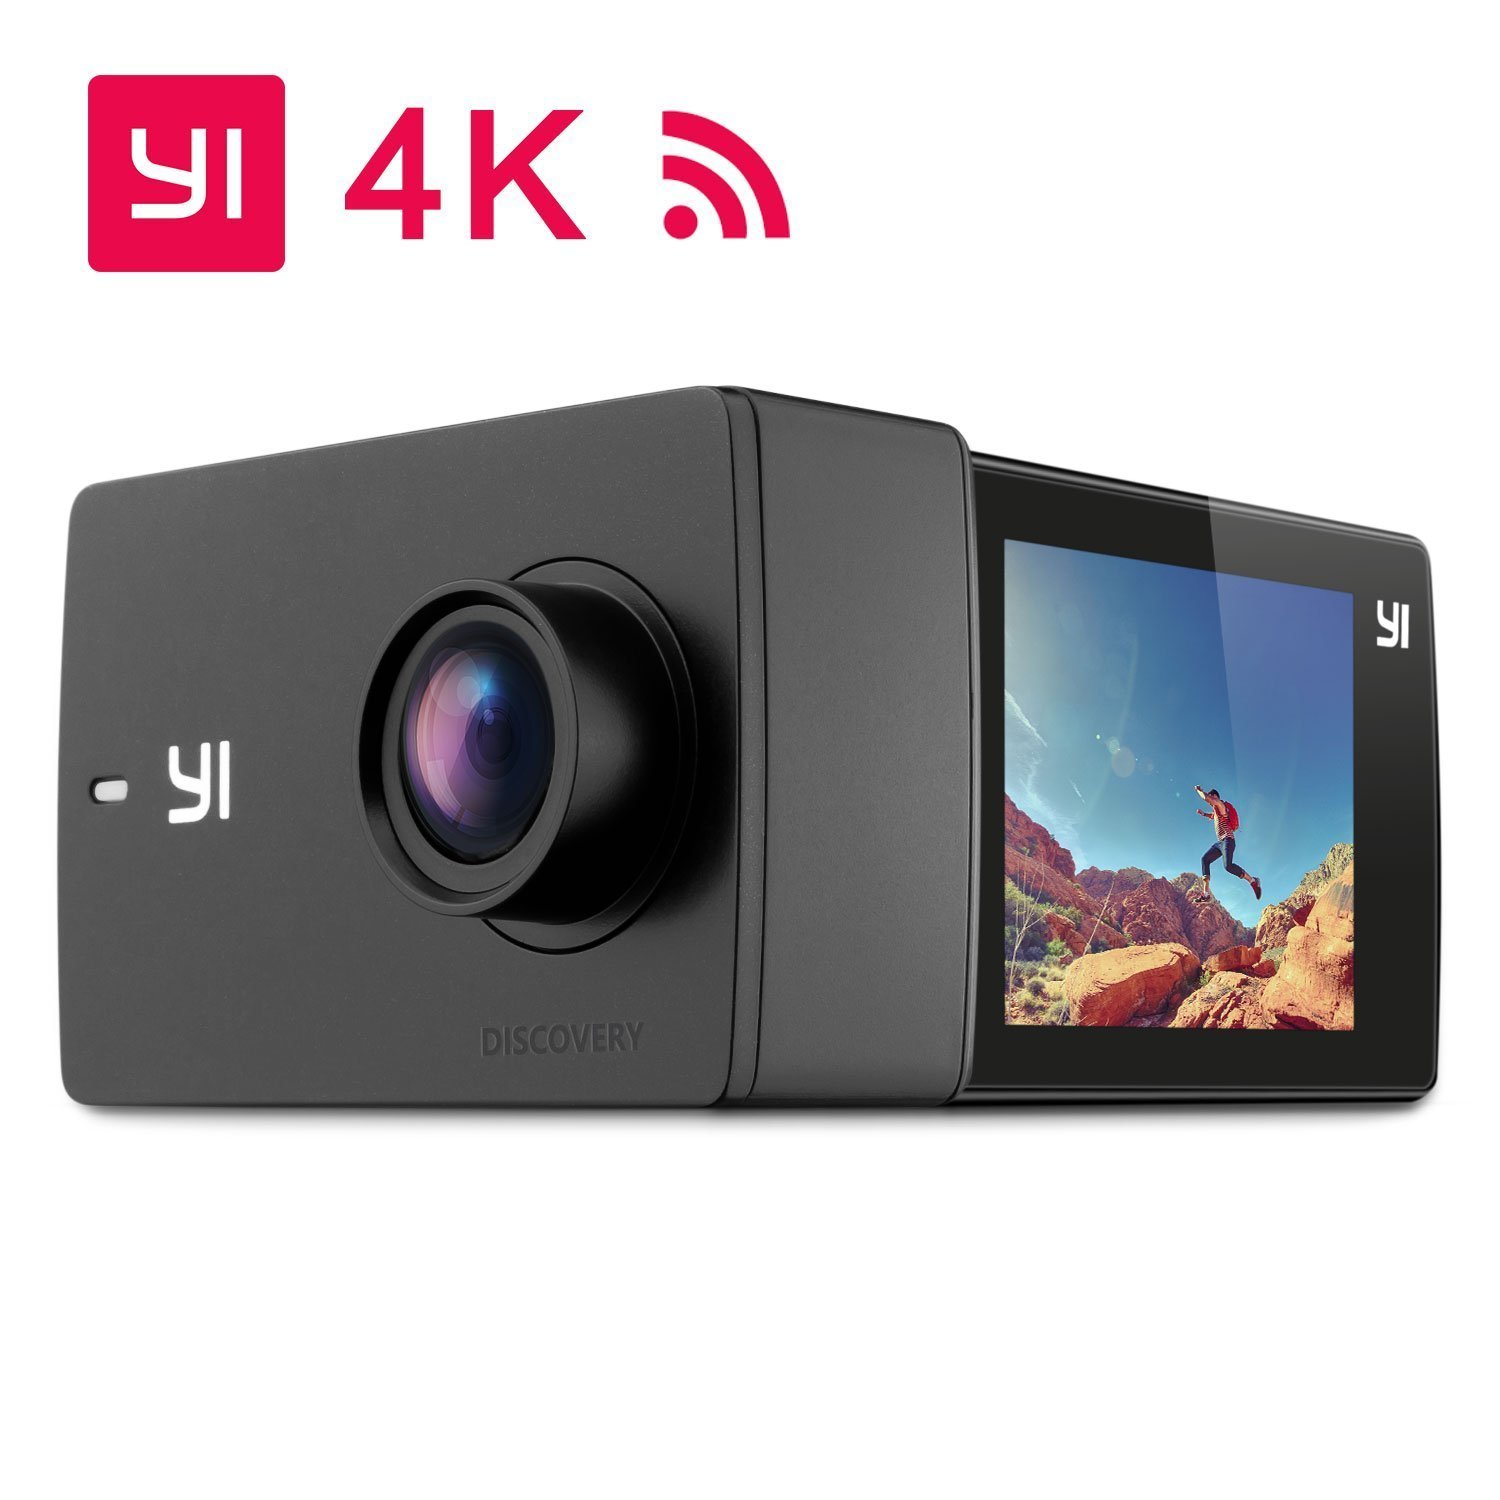 [CODICE SCONTO] YI Discovery 4K Action Camera su Amazon